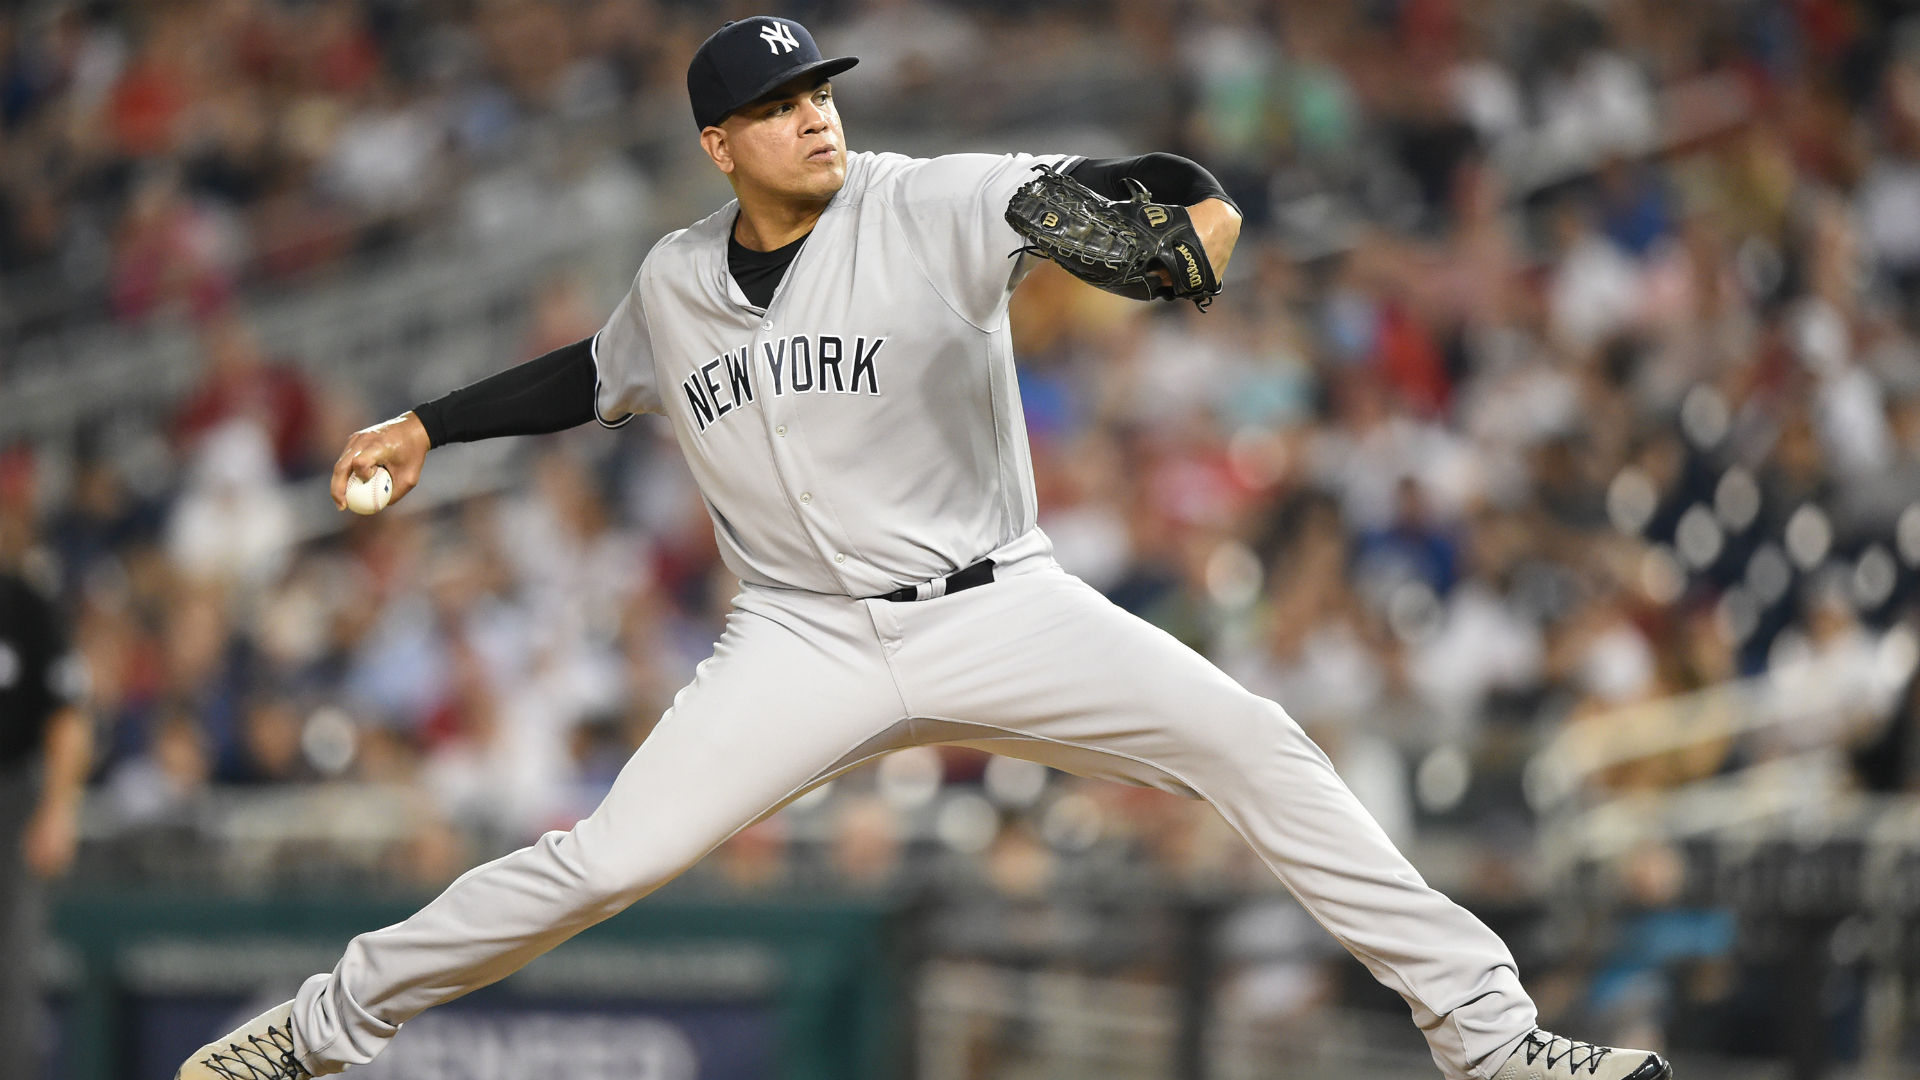 What should the Yankees expect from Dellin Betances upon his return to Pinstripes?